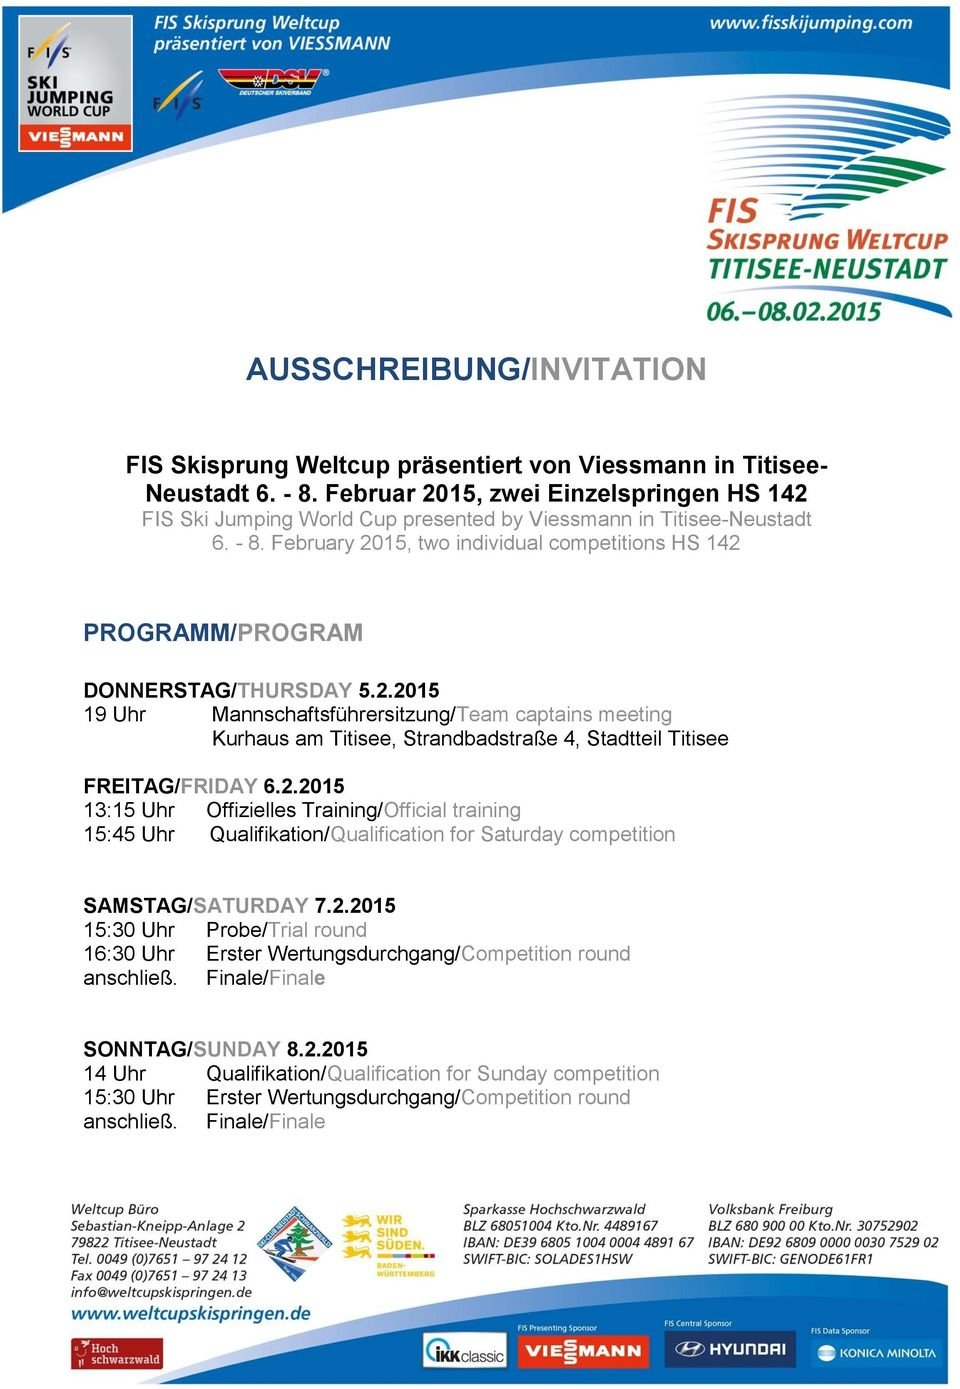 February 2015, two individual competitions HS 142 PROGRAMM/PROGRAM DONNERSTAG/THURSDAY 5.2.2015 19 Uhr Mannschaftsführersitzung/Team captains meeting Kurhaus am Titisee, Strandbadstraße 4, Stadtteil Titisee FREITAG/FRIDAY 6.